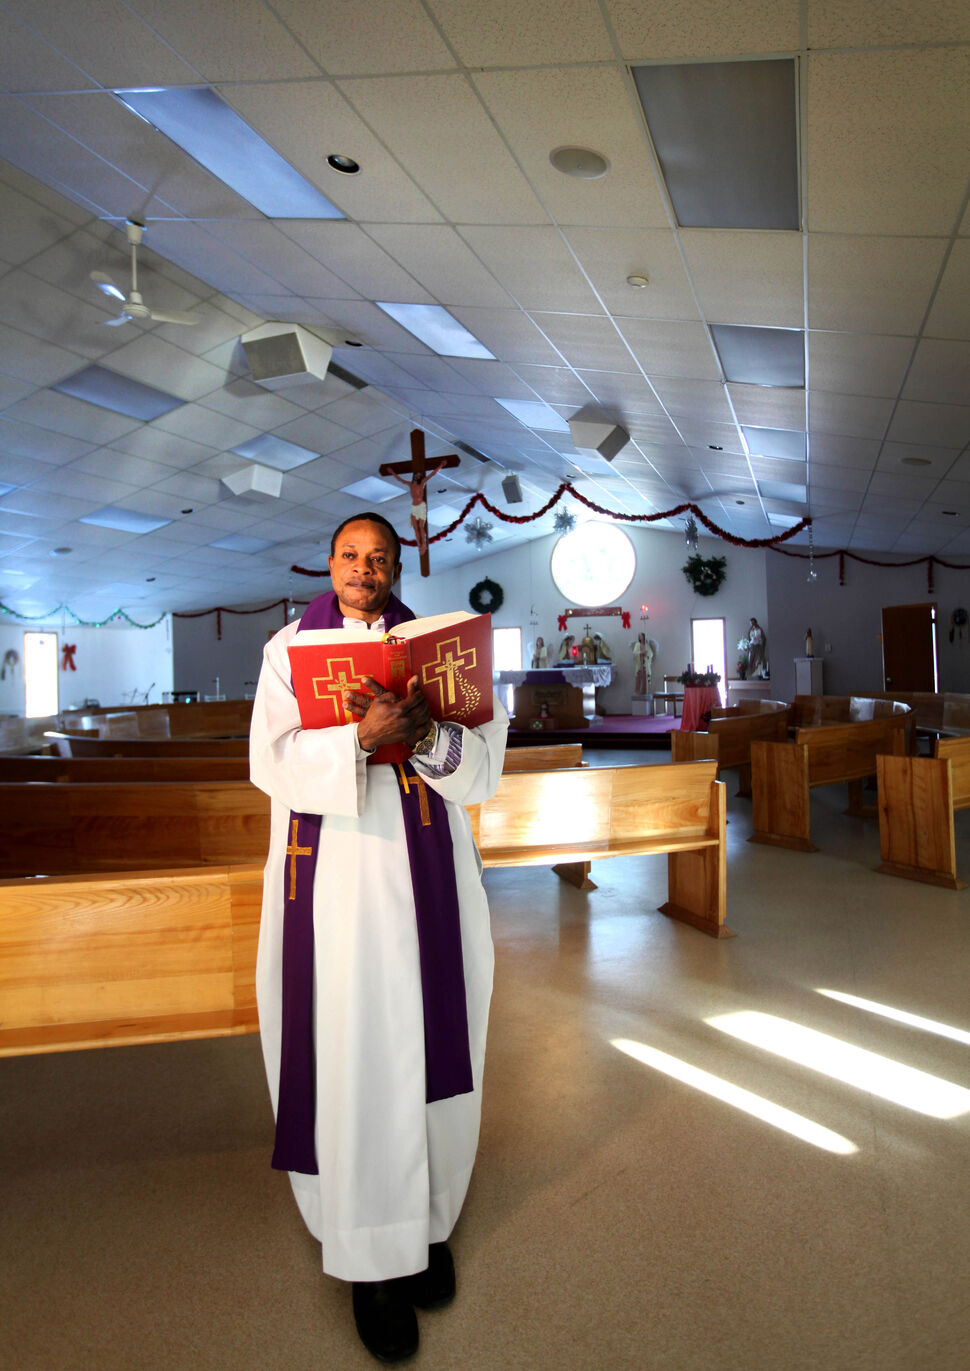 Parish Priest Malacy Ekezie of St. Alexander Parish church in Sagkeeng First Nation. 